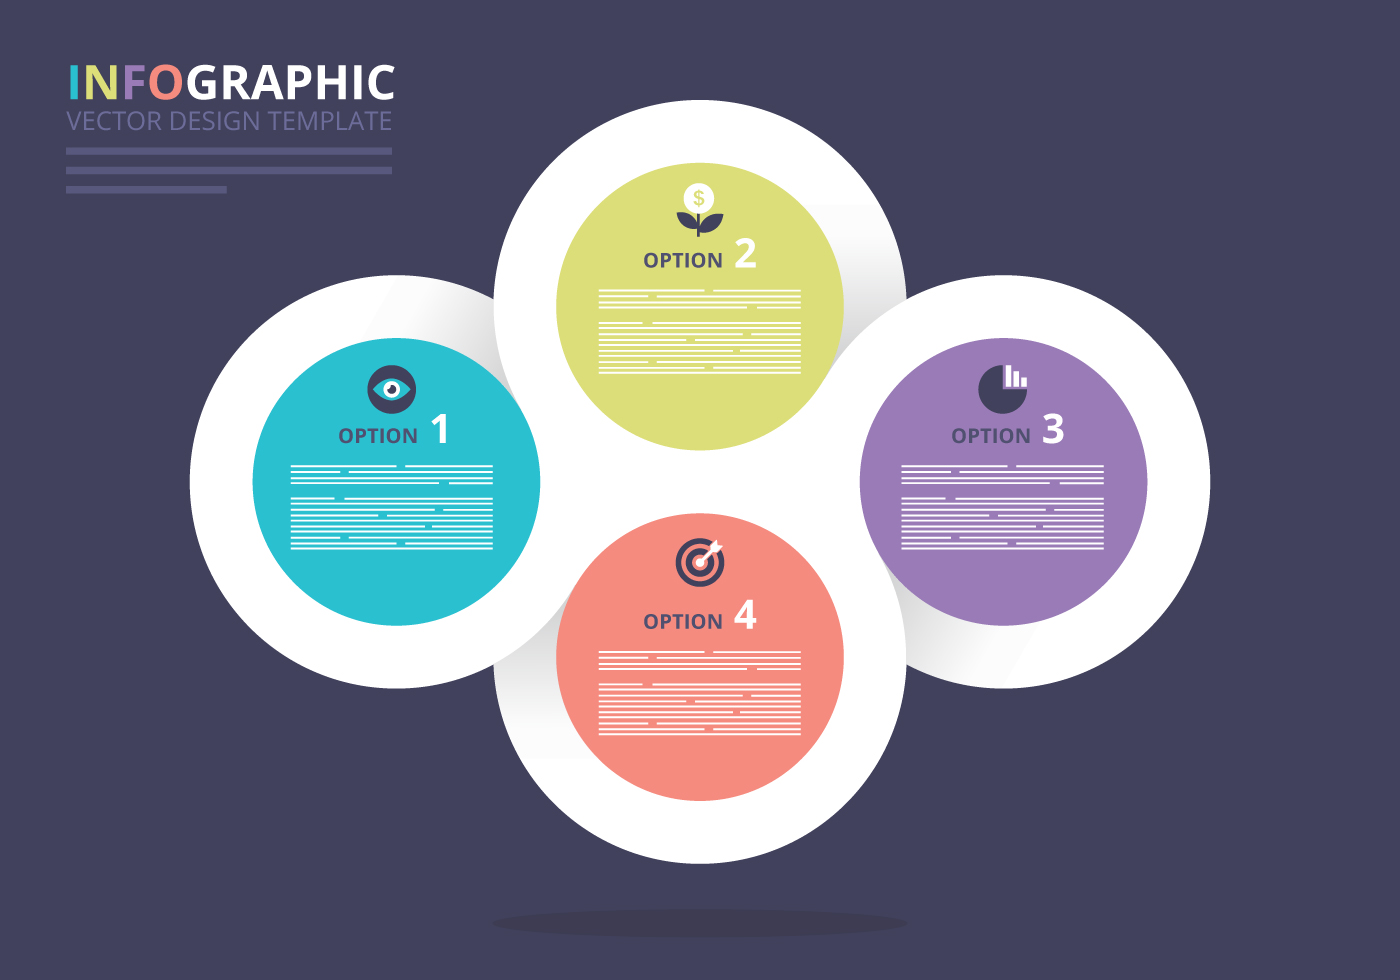 30 free infographic templates to download free psd templates four options linked circles origami business infographic option or steps presentation vector template with editable text and icons free download maxwellsz